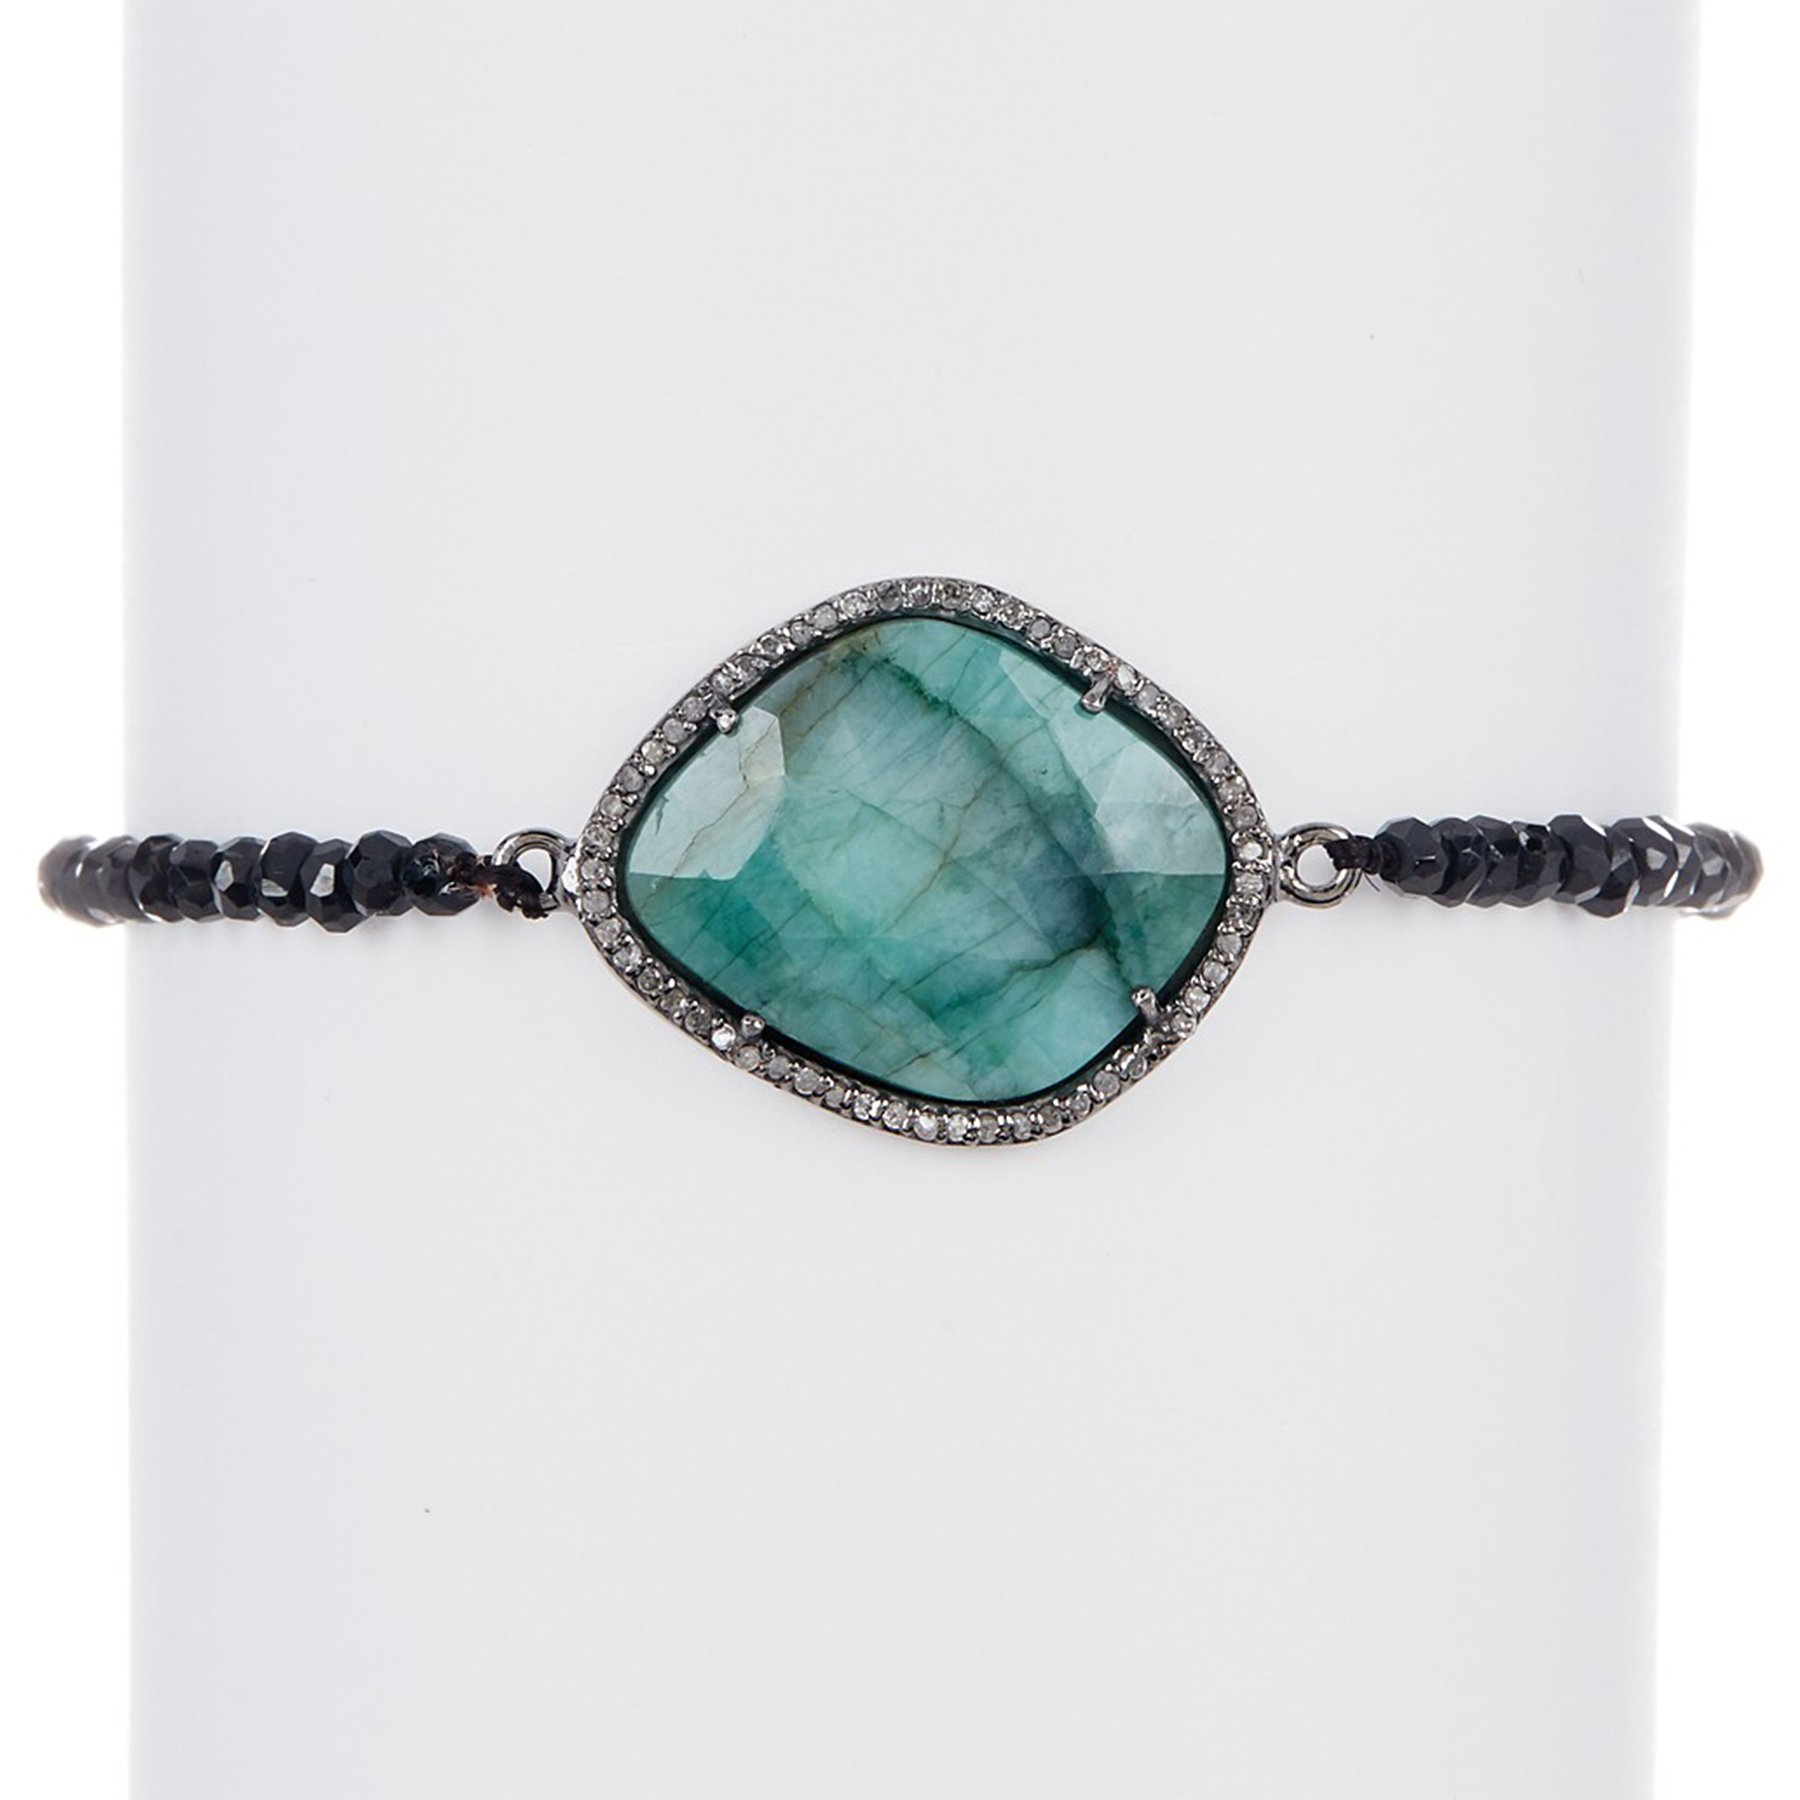 Emerald, Champagne Diamond, and Black Spinel Cayenne Bracelet by ADORNIA (Image #1)